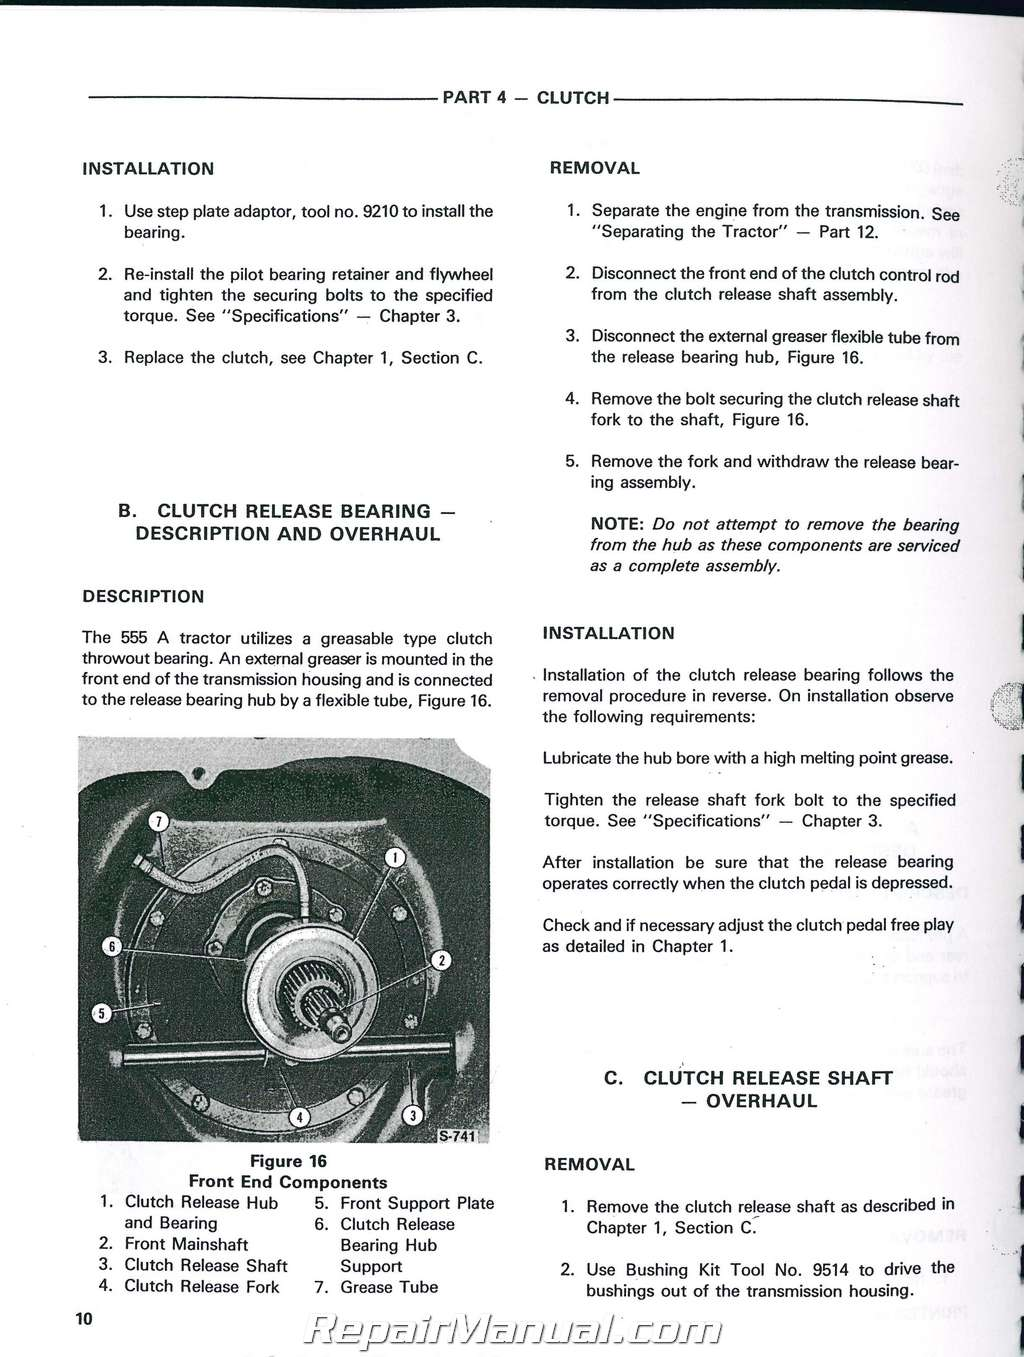 ford 555a 555b 655a tractor loader backhoe printed service manual rh repairmanual com 1988 Ford 655A Extendahoe Specs 655A Ford Backhoe Parts